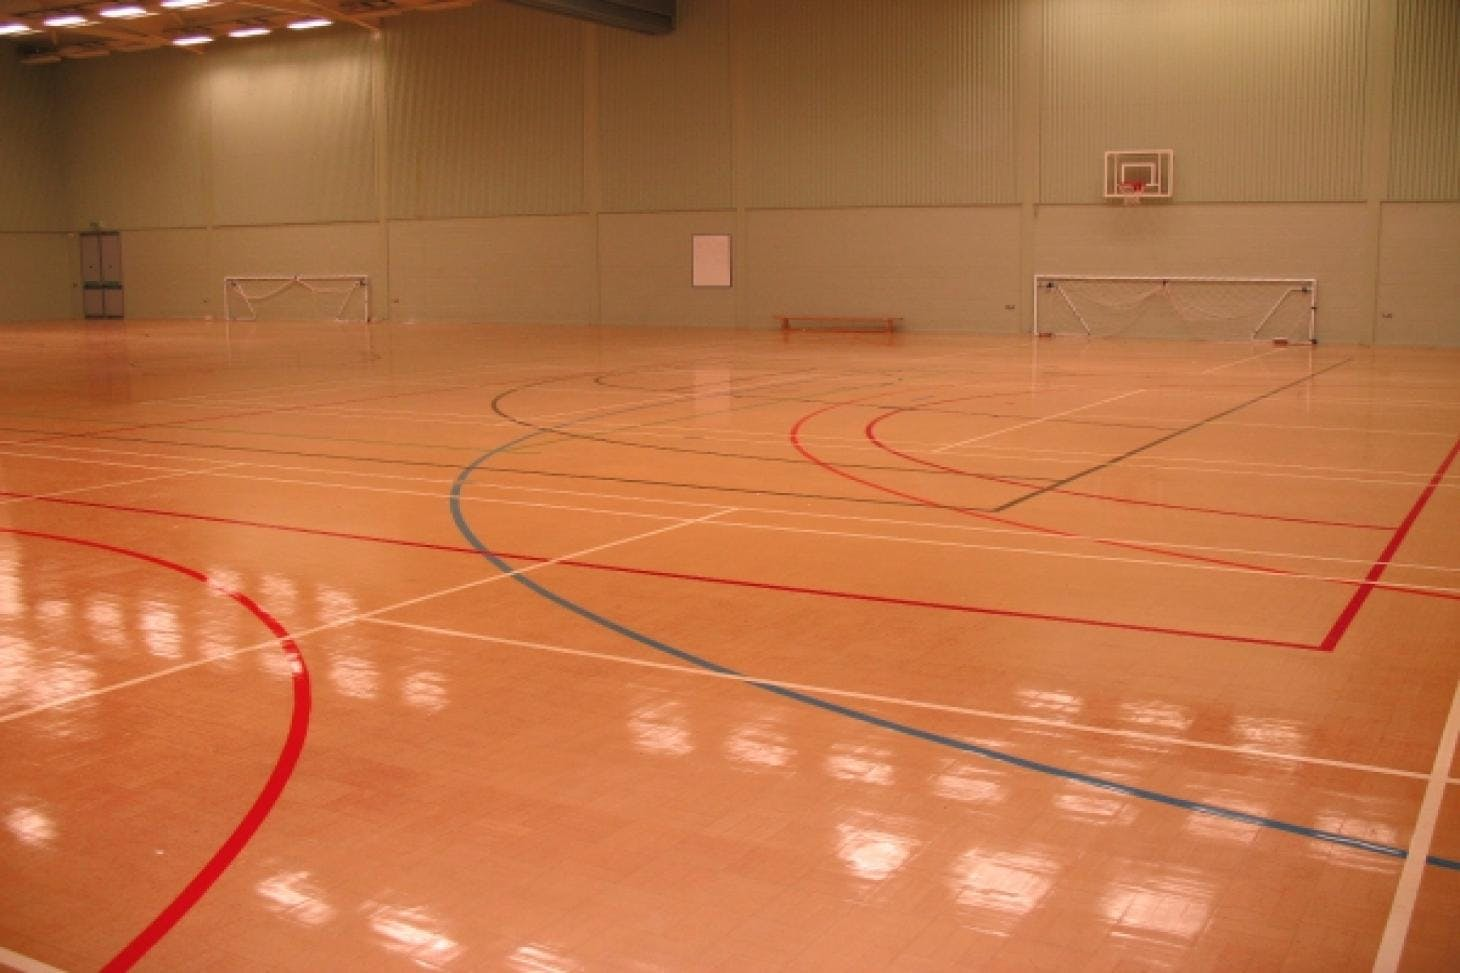 Herschel Sports Indoor | Hard badminton court